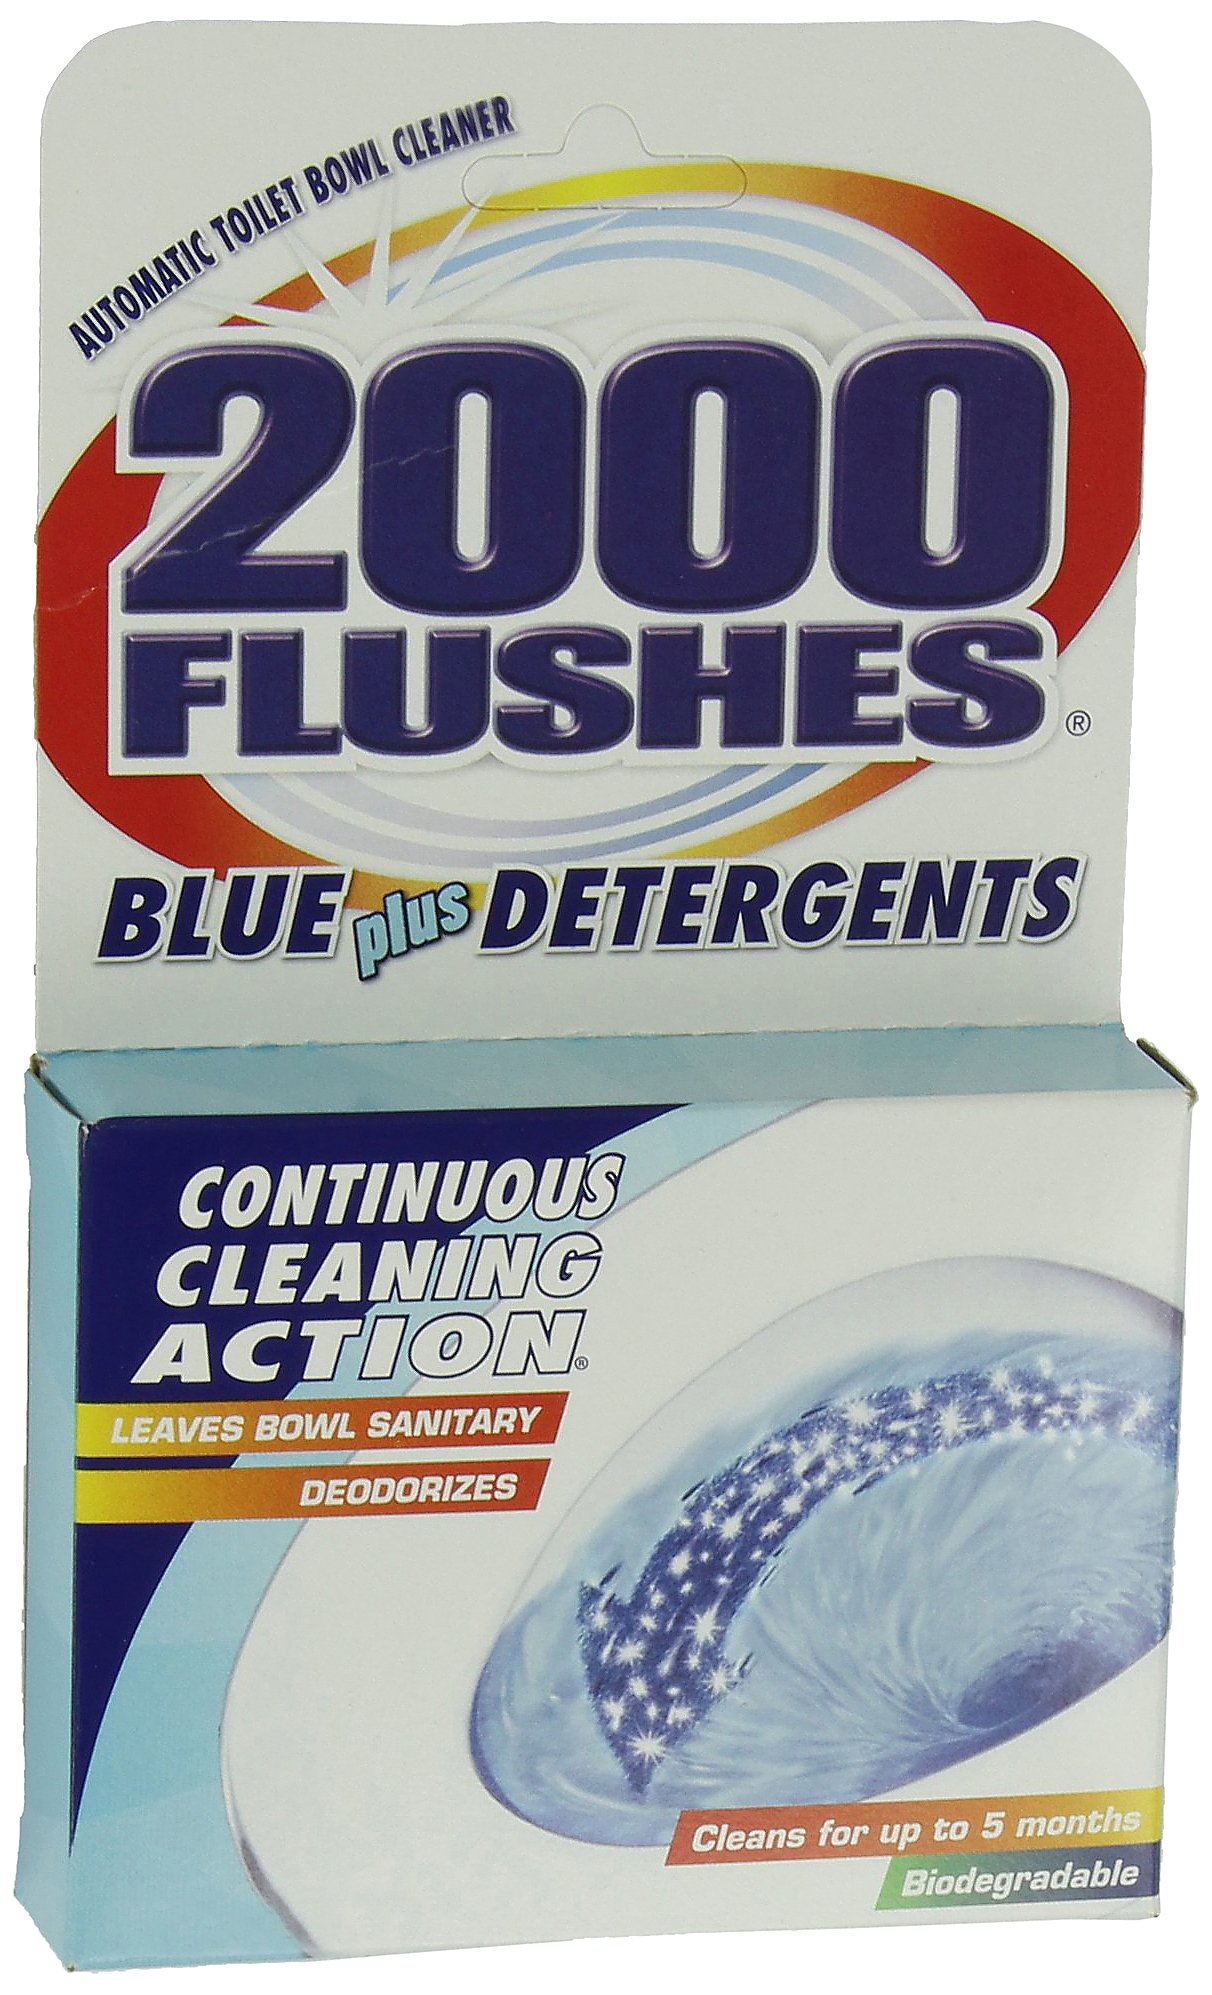 2000FlushesBluePlus Detergents Automatic Toilet Bowl Cleaner, 3.5 OZ [12-Pack] by 2000 FLUSHES